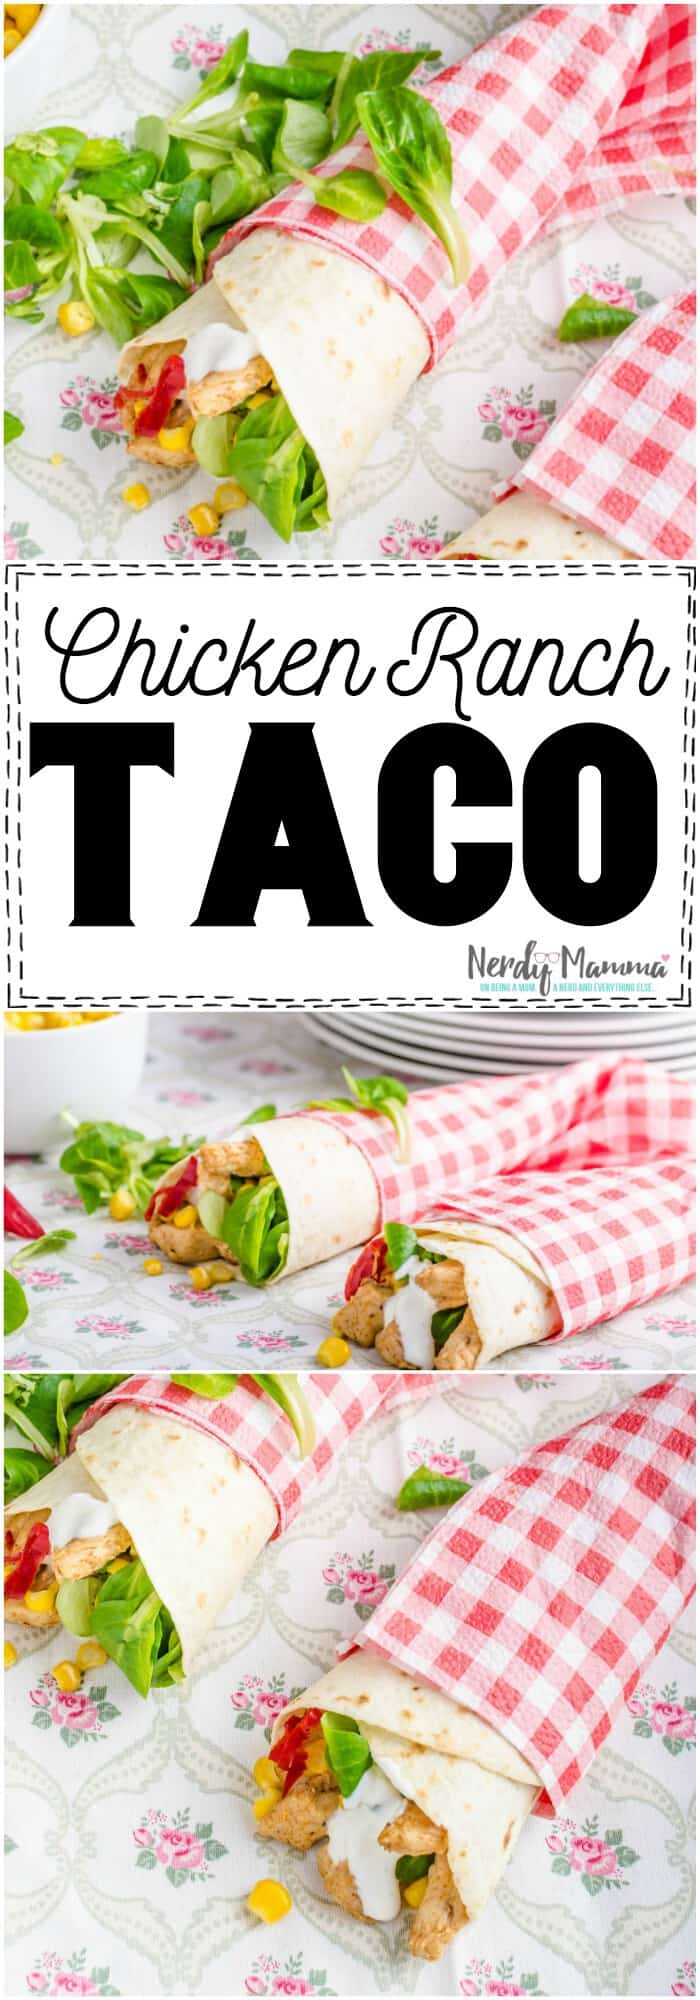 I love how simple and yet flavor-packed these Chicken Ranch Tacos are! #mexican #mexicanfood #mexicanrecipe #taco #tacorecipe #ranch #chicken #chickentaco #yummy